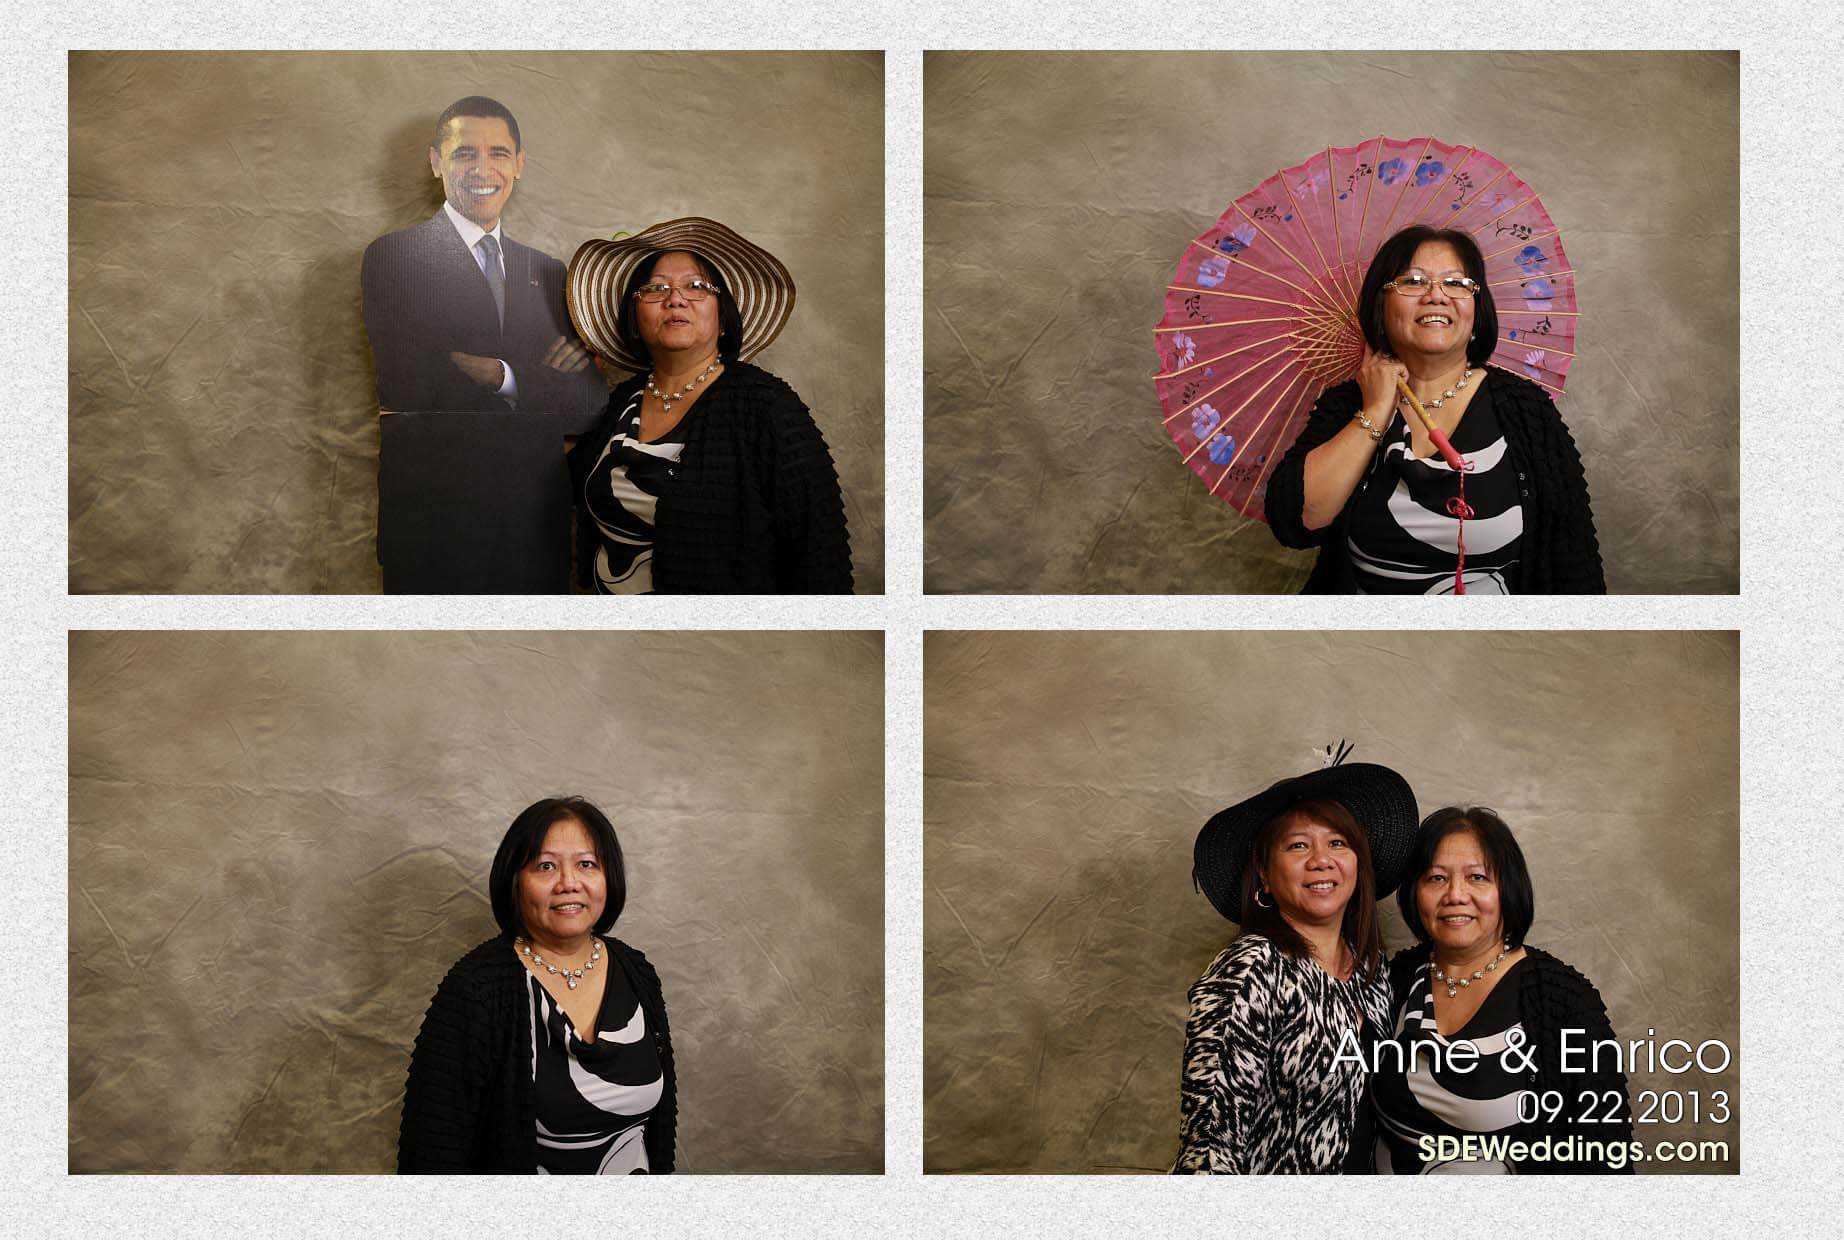 Deer Creek Golf Amp Banquet Facility Ajax Wedding Photobooth Anne Enrico Sde Weddings